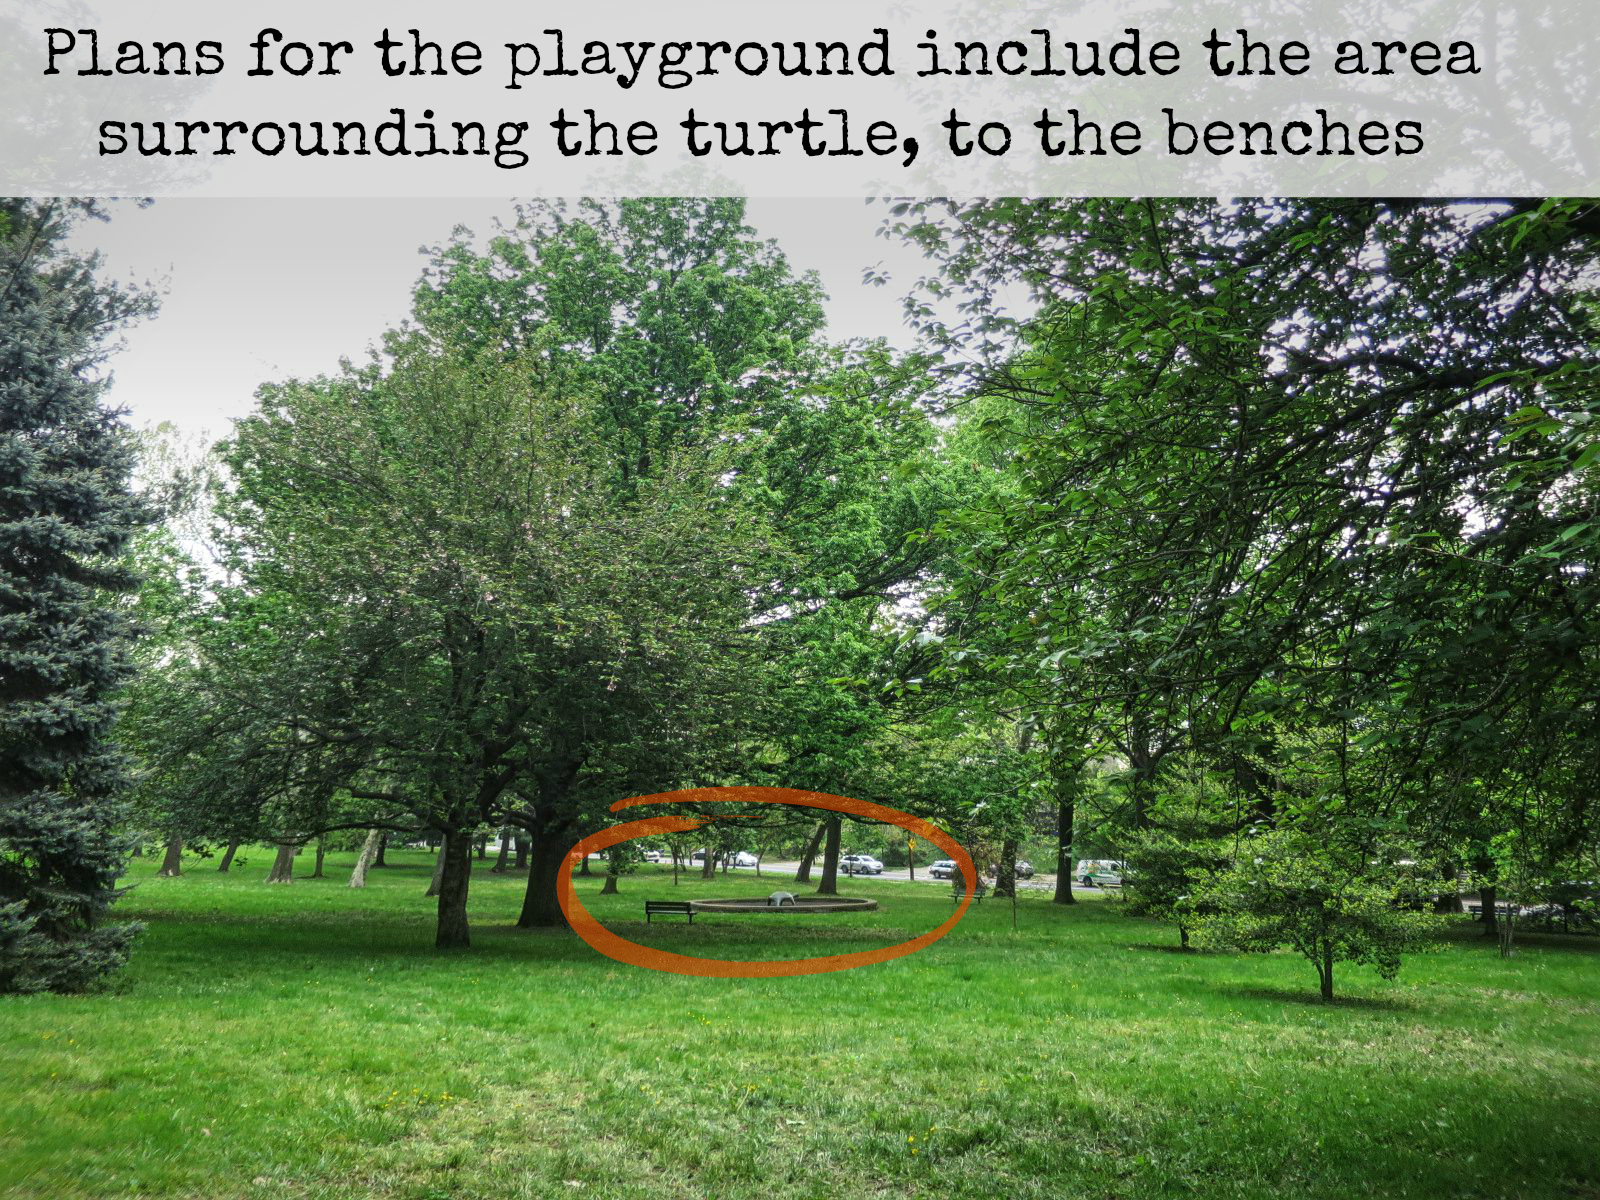 EastFallsLocal 5-11 McMichael proposed playground area far survey behind text